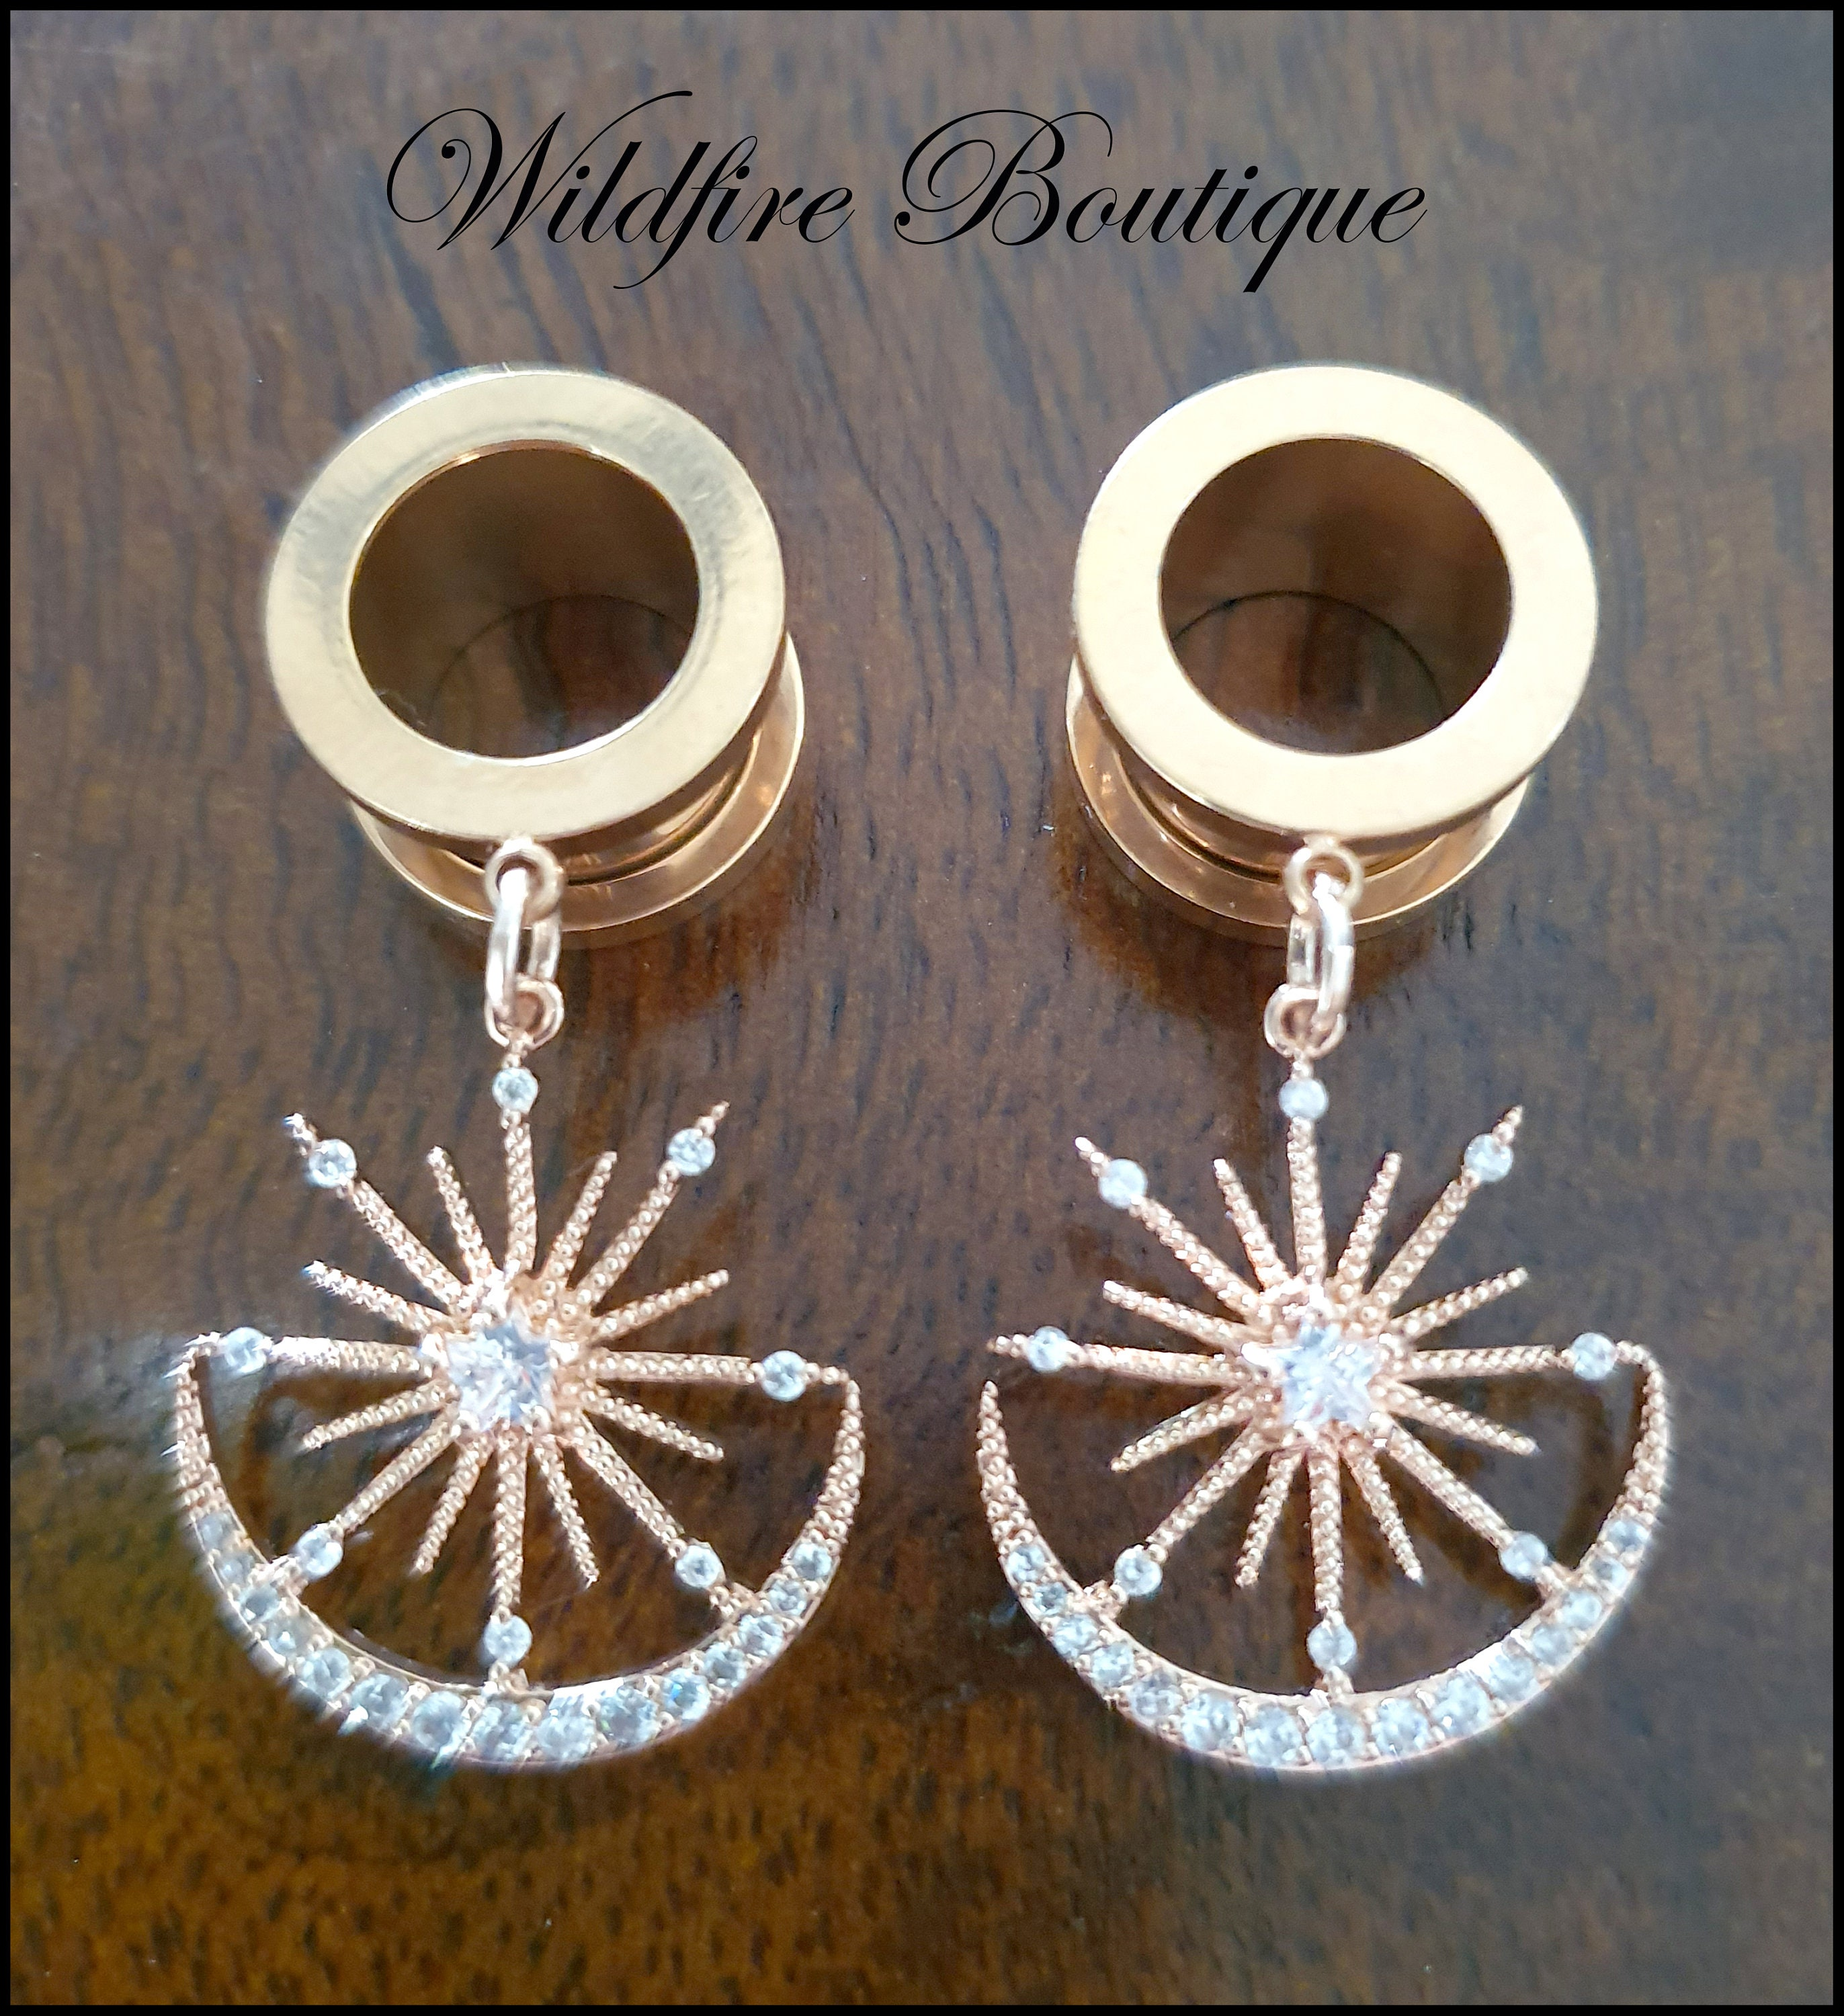 Pair Rose Gold Glam Star /& Moon Dangle Stainless Steel Ear Tunnels Plugs 6-25mm